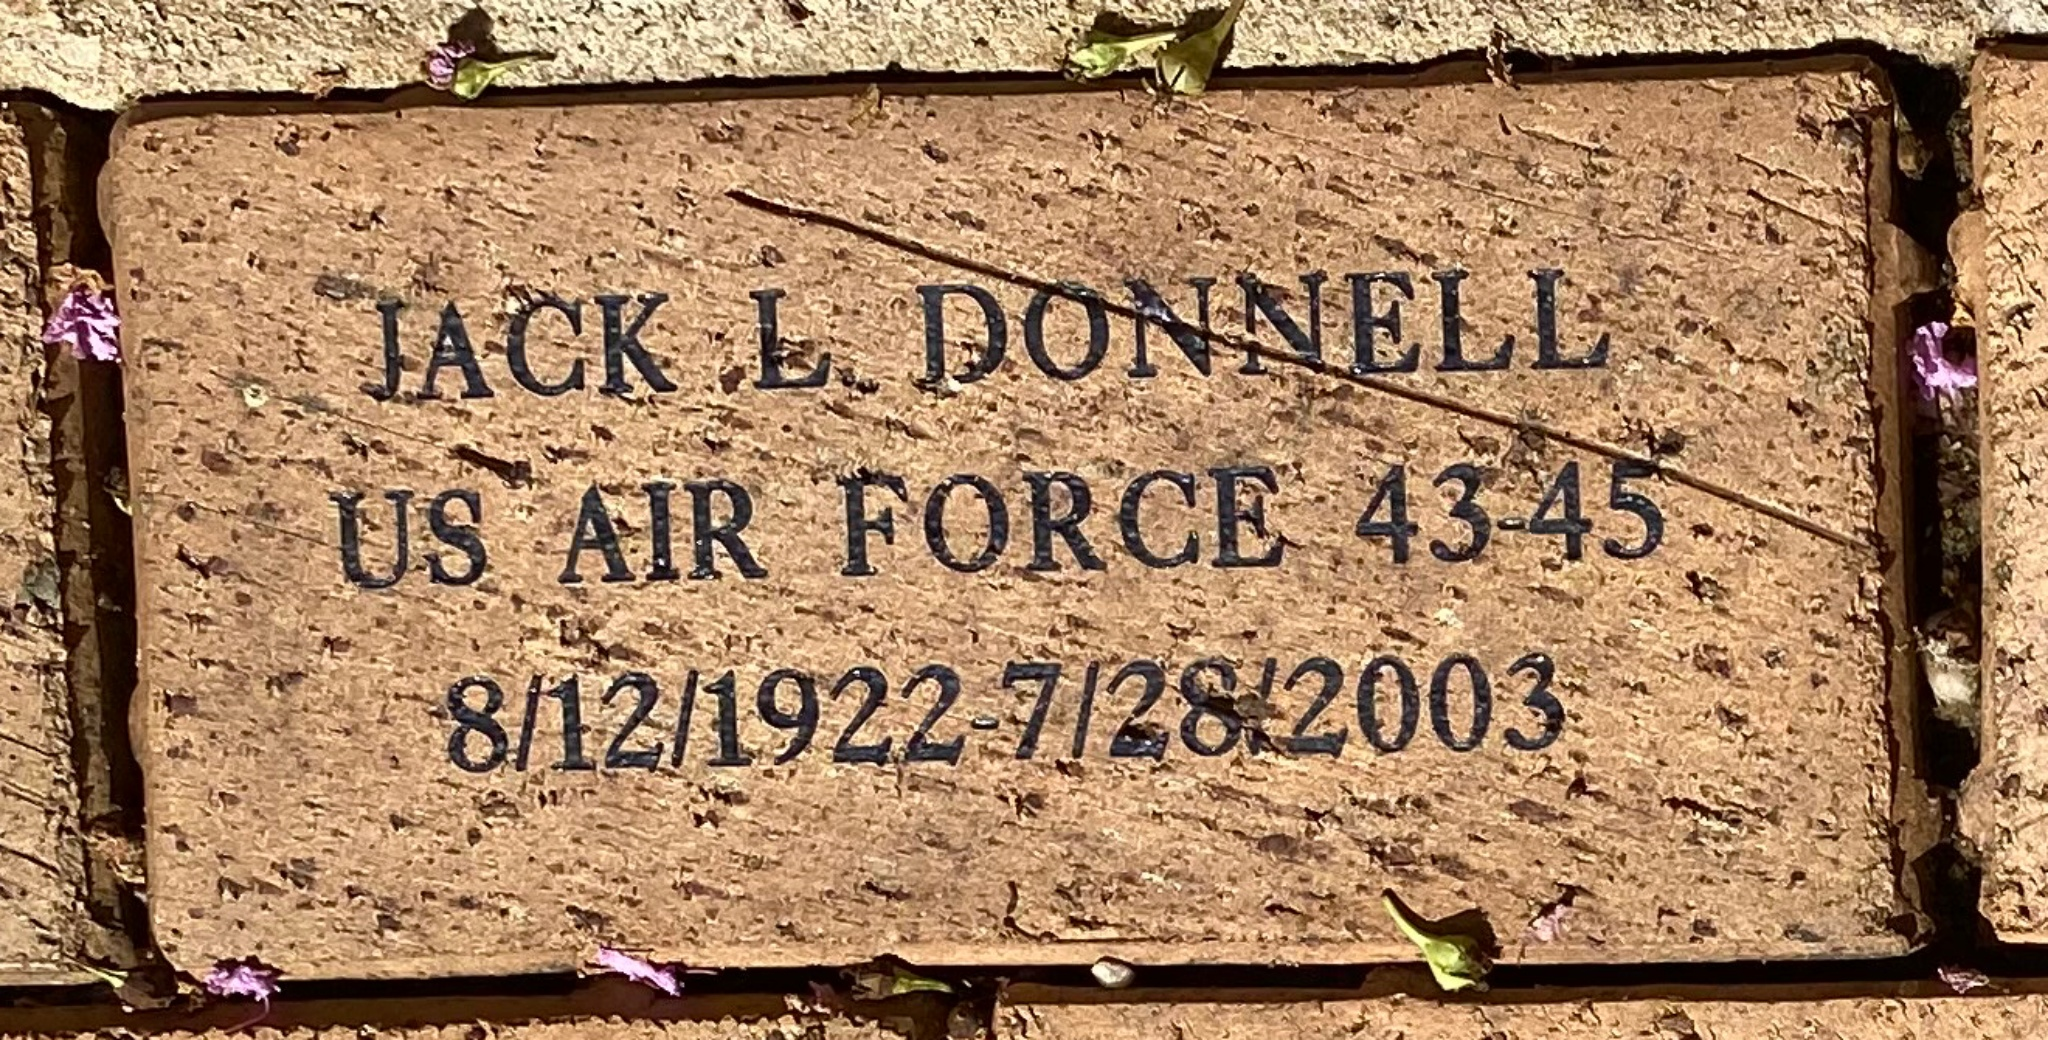 JACK L. DONNELL US AIR FORCE 43-45 8/12/1992 7/28/2003